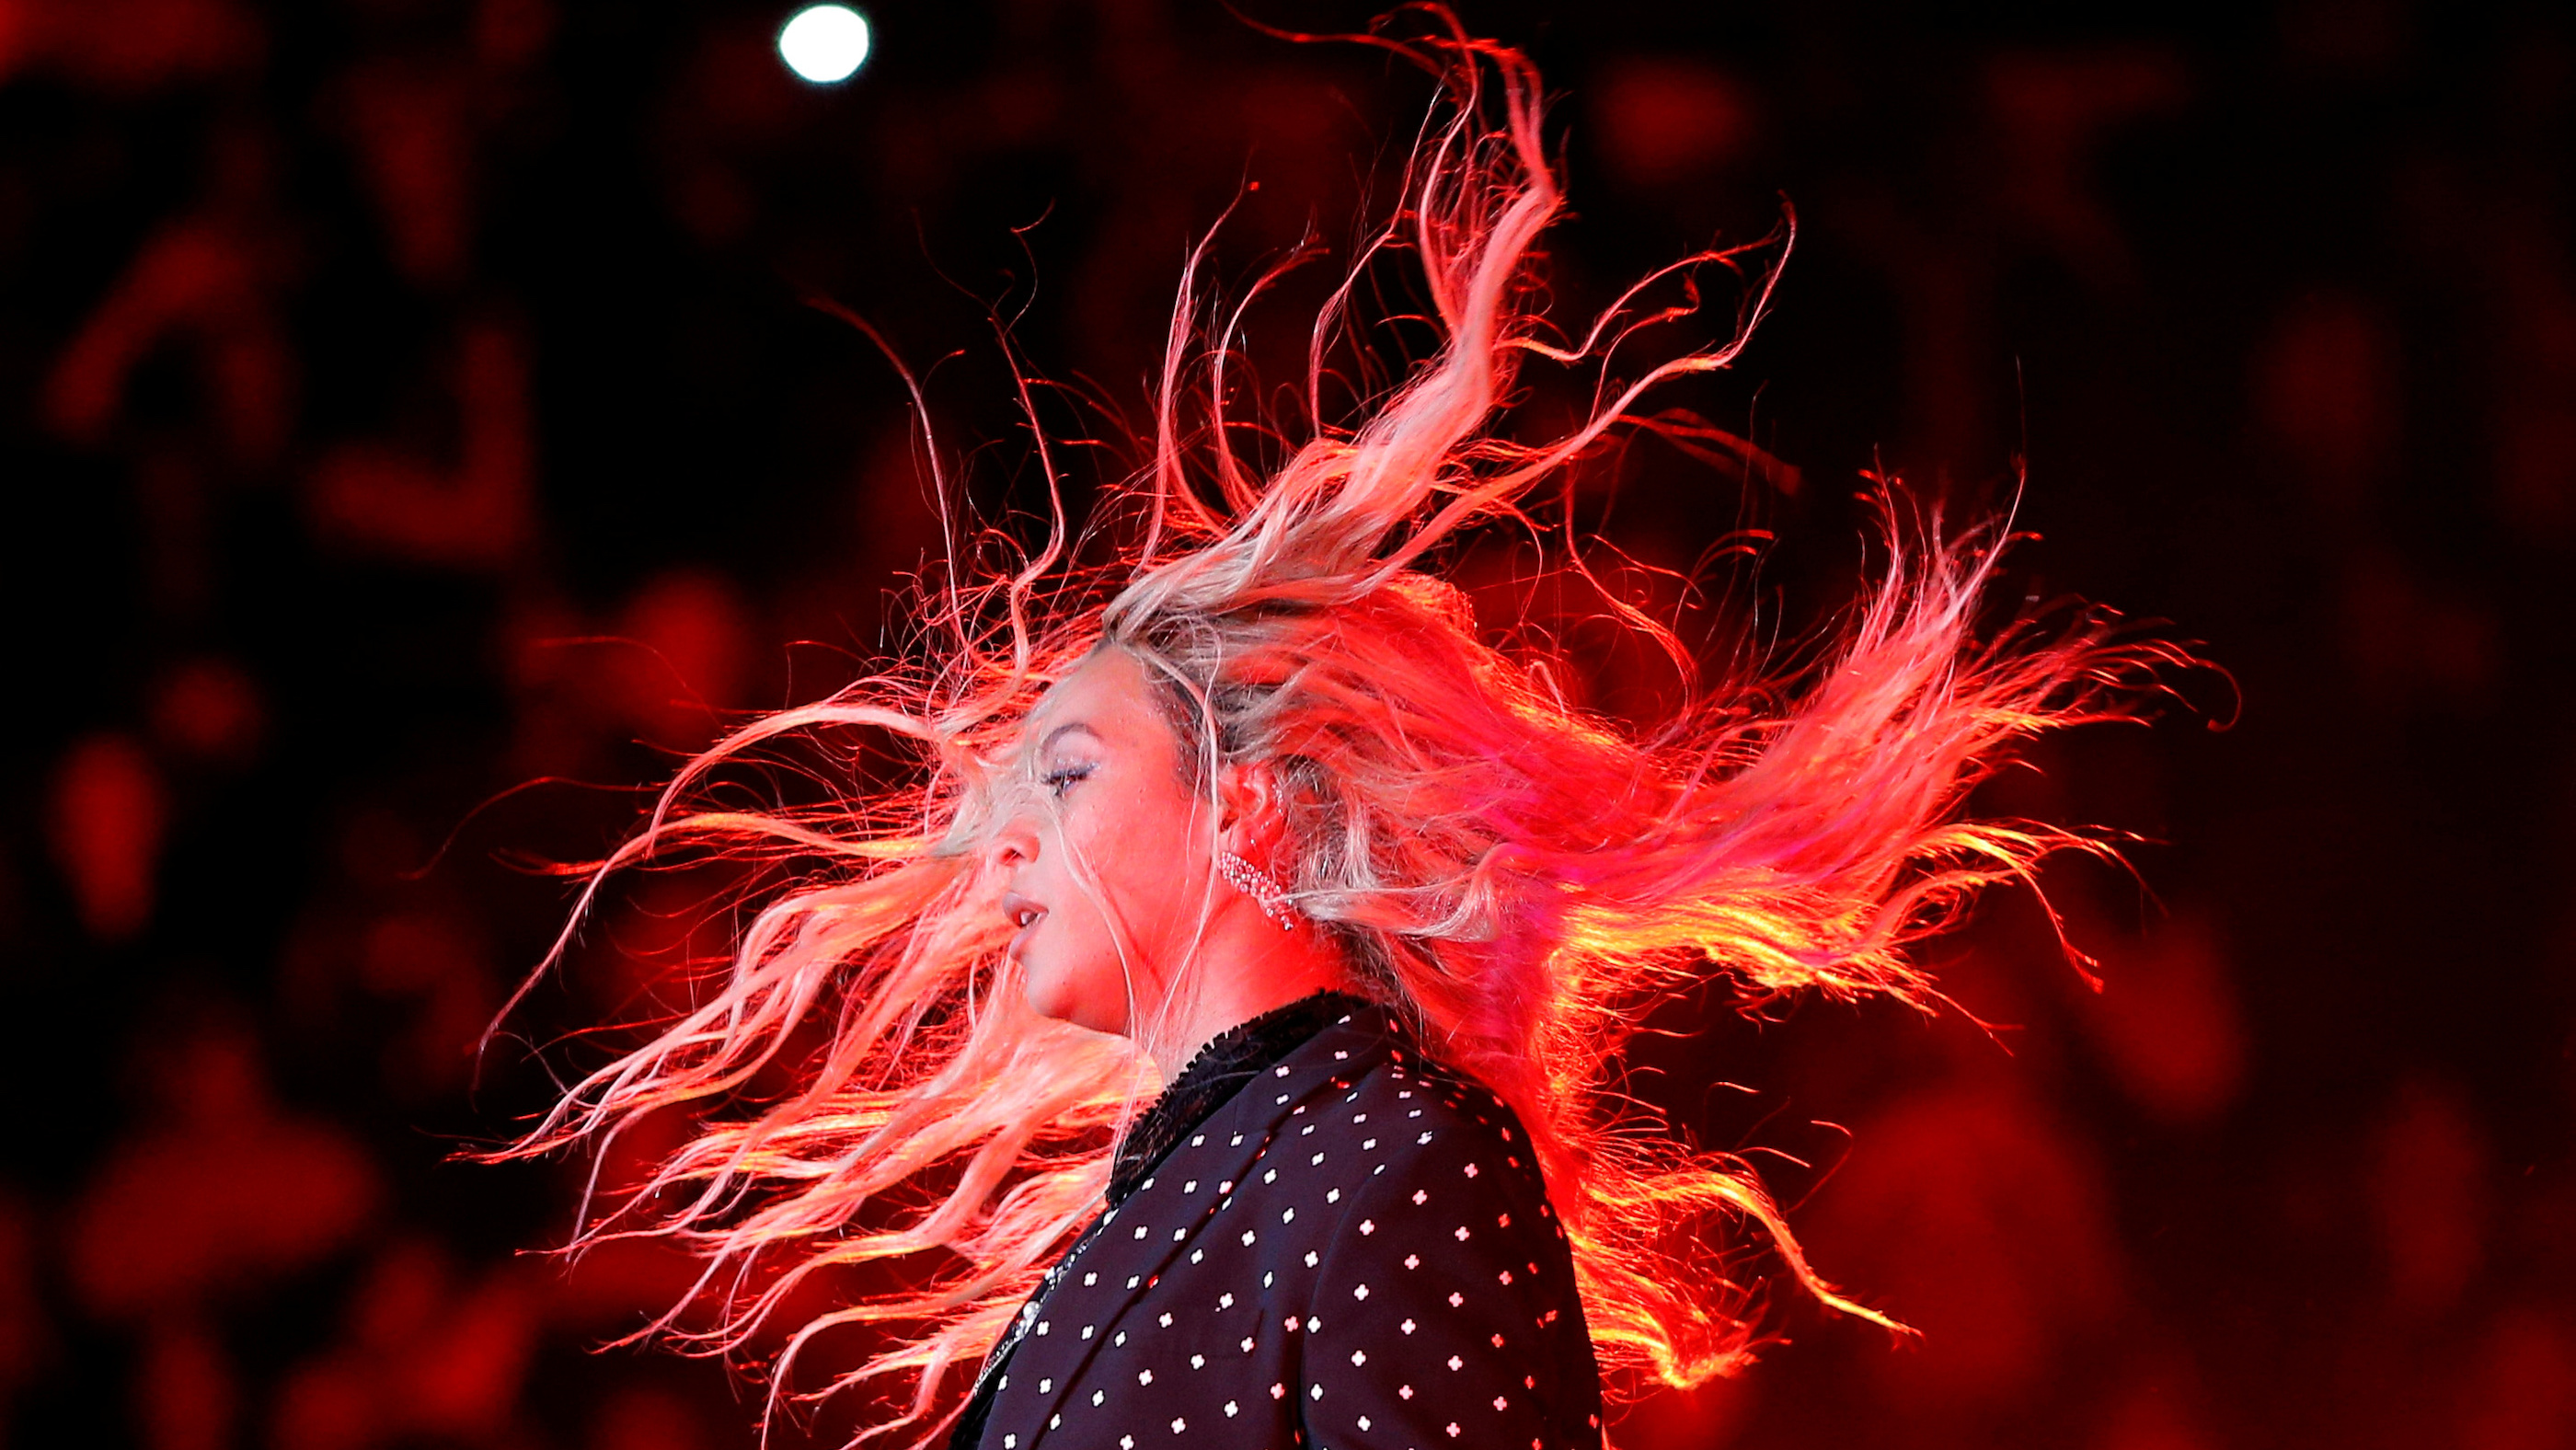 Beyonce performs at a campaign concert for U.S. Democratic presidential nominee Hillary Clinton in Cleveland, Ohio, U.S. November 4, 2016.  REUTERS/Brian Snyder      TPX IMAGES OF THE DAY      - RTX2S01I